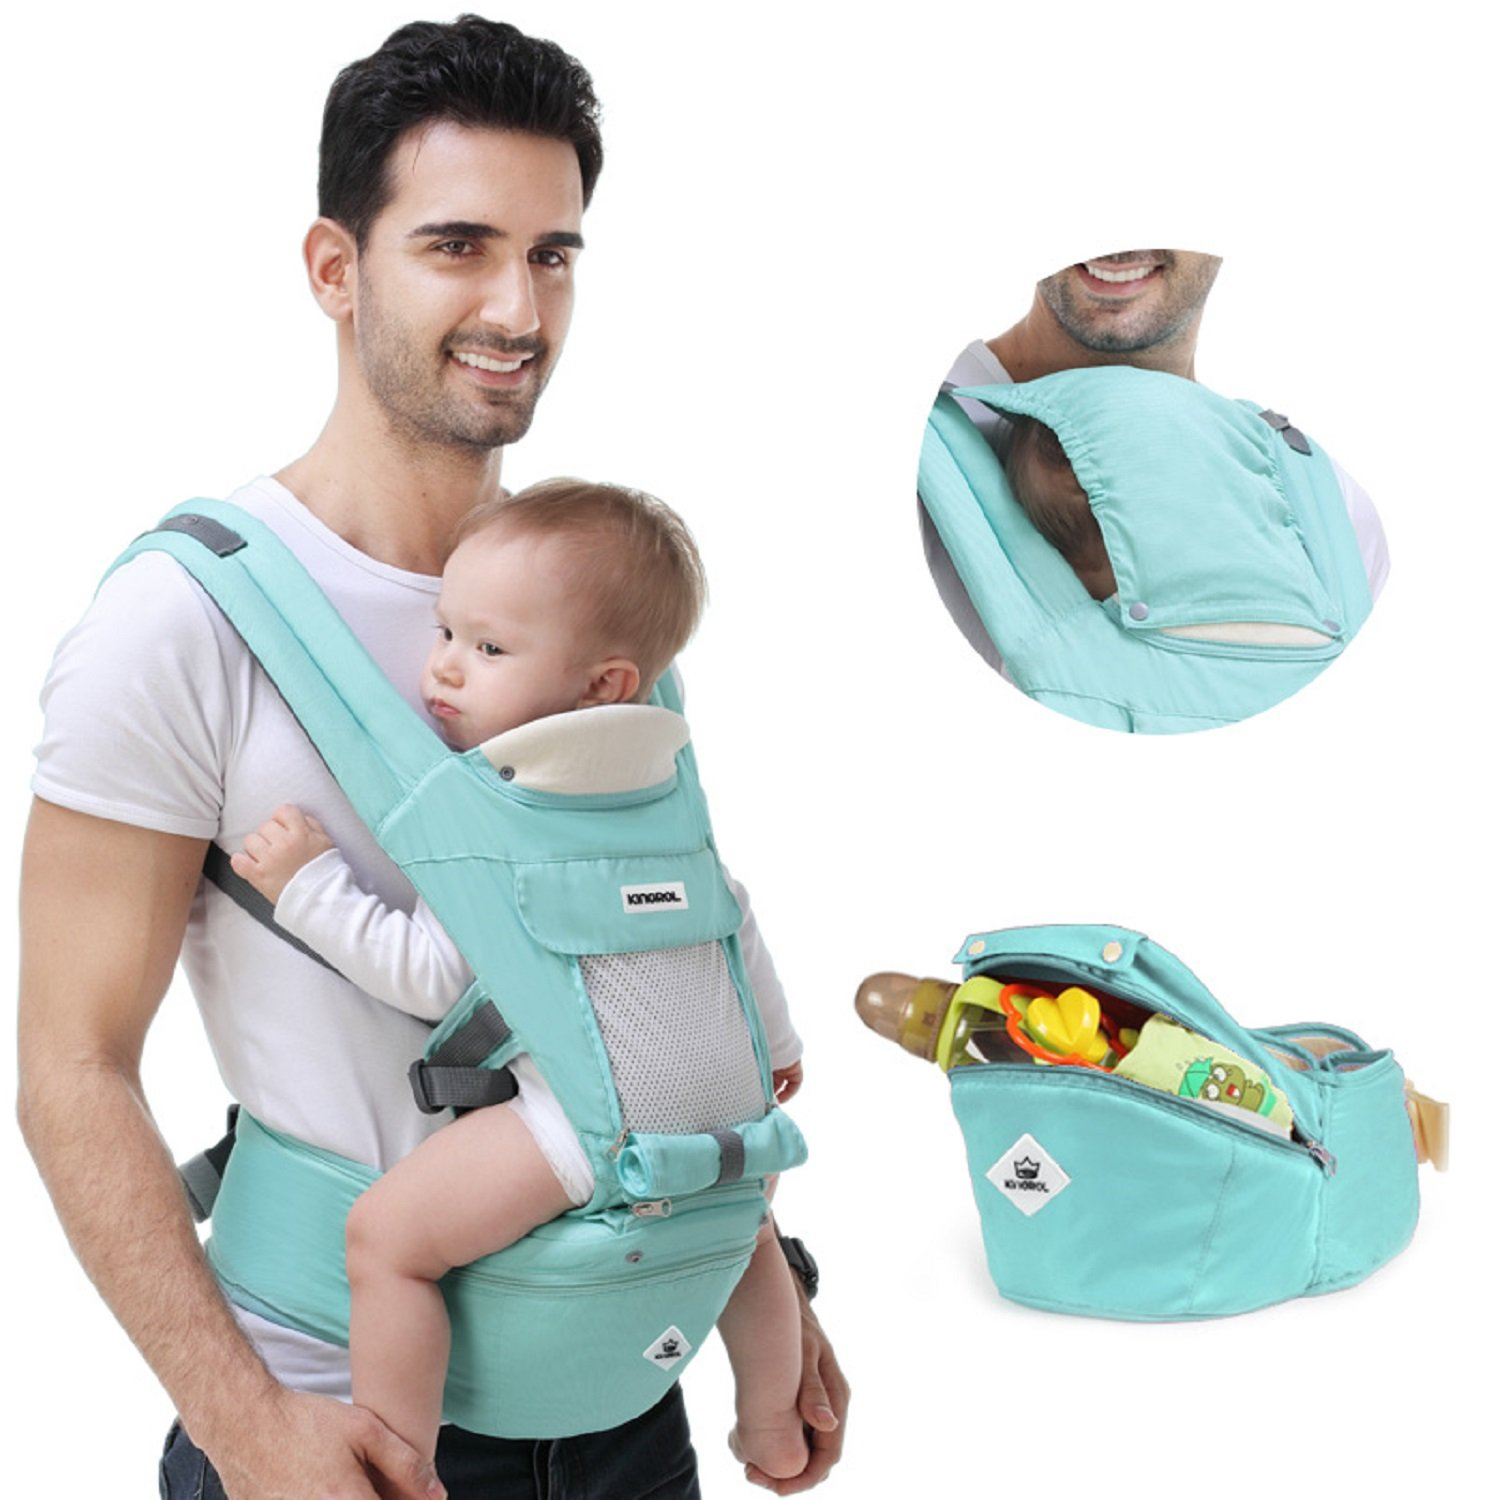 360 Ergonomic Baby Carrier Adjustable Backpack with Hip Seat,12 Positions All Seasons Summer,Baby Diaper Bag with Large Capacity,Breathable Mesh Safe Comfortable,for Infant/Toddler/Newborn,Light Green